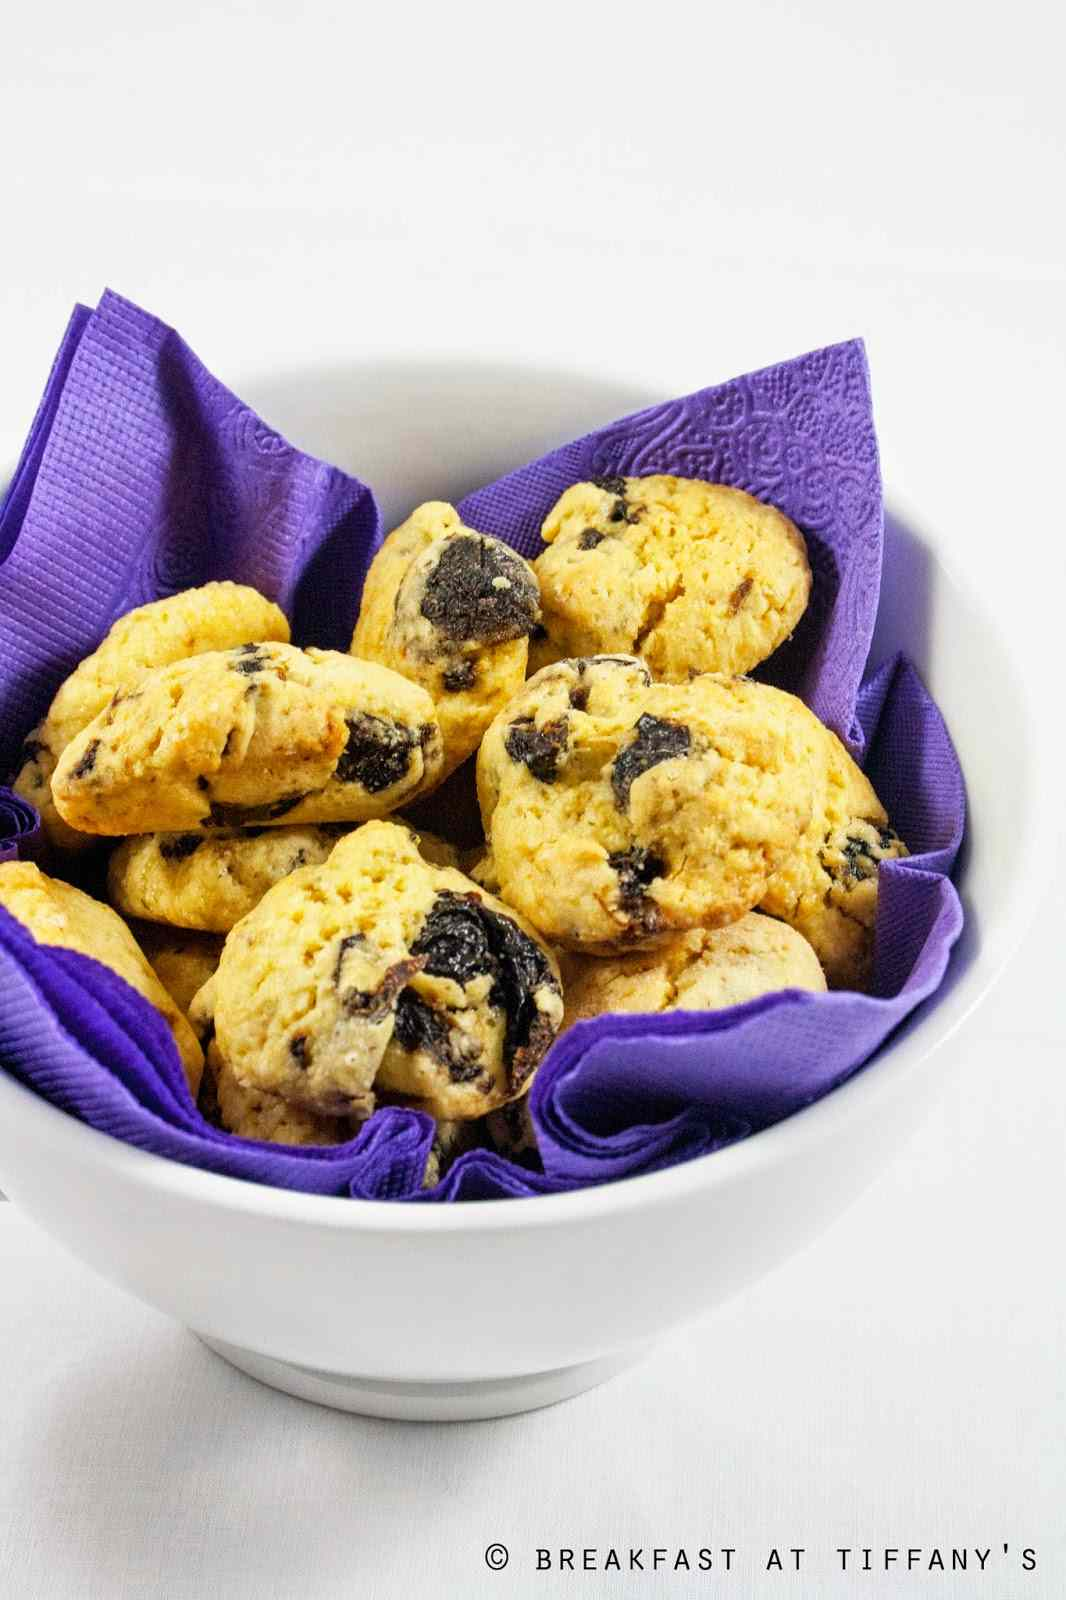 Ricetta: Cookies al kamut con prugne secche / khorasan wheat cookies with dried plums